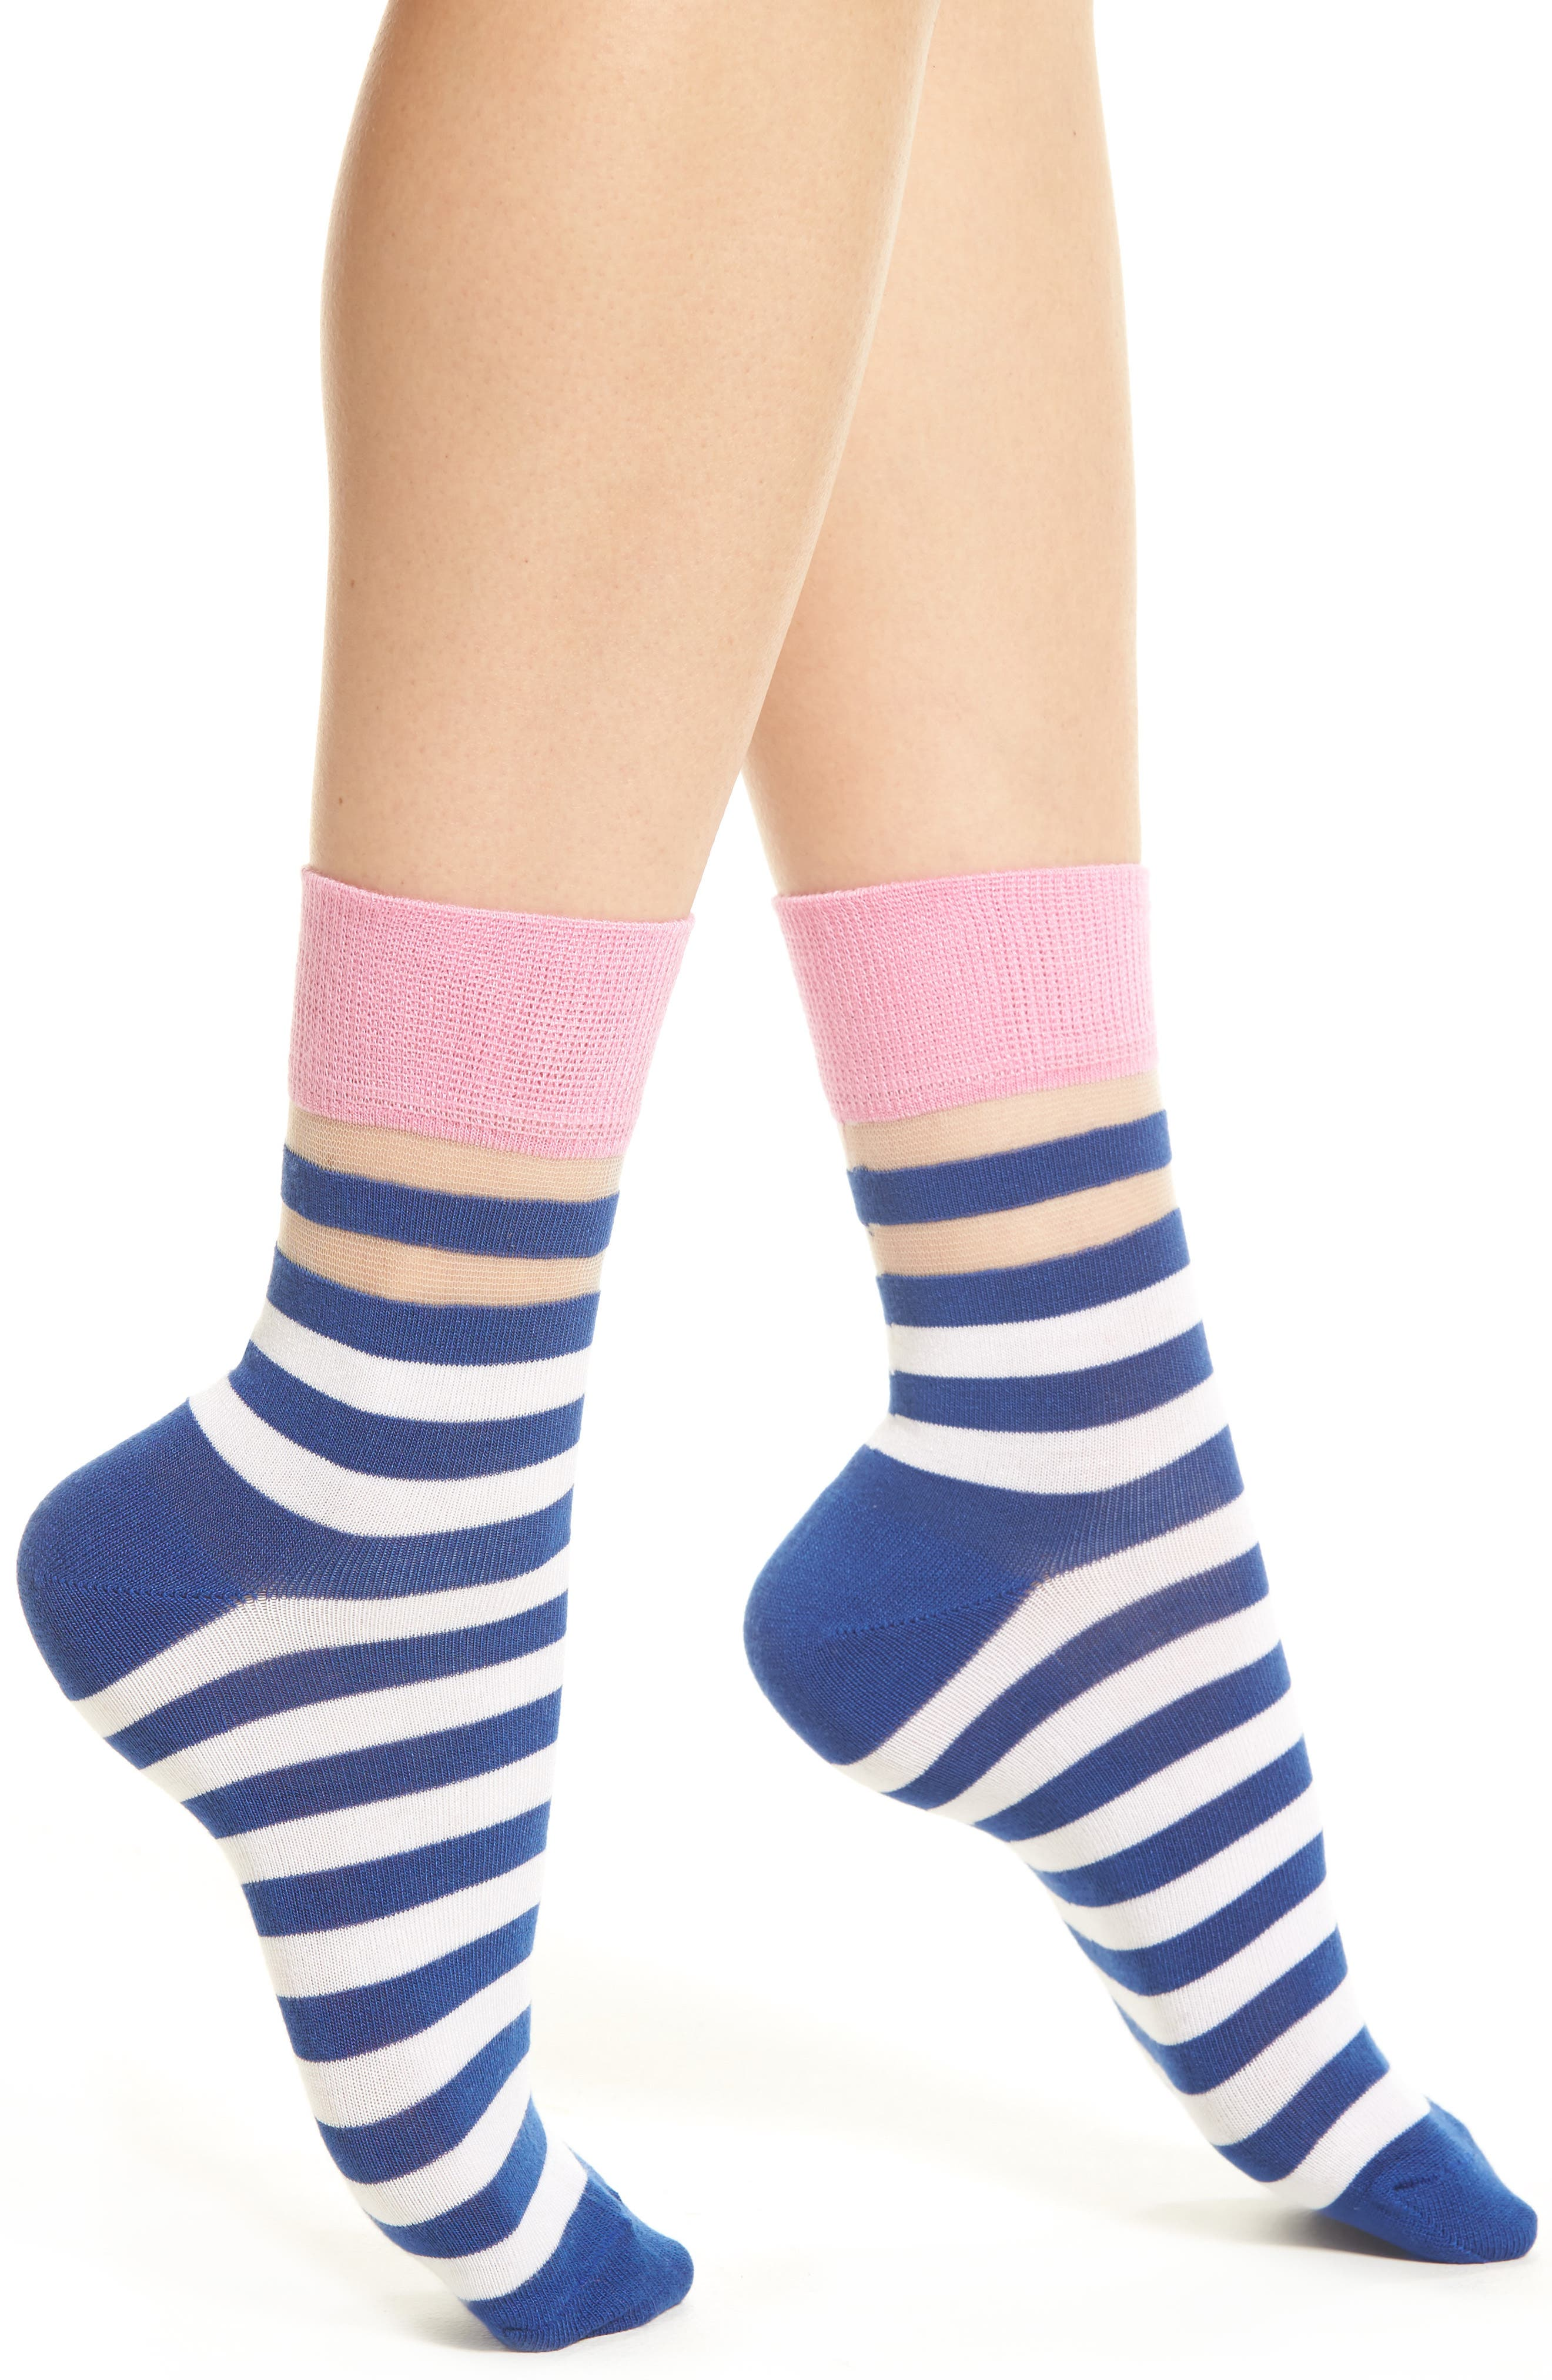 Verna Crew Socks,                             Main thumbnail 1, color,                             Blue